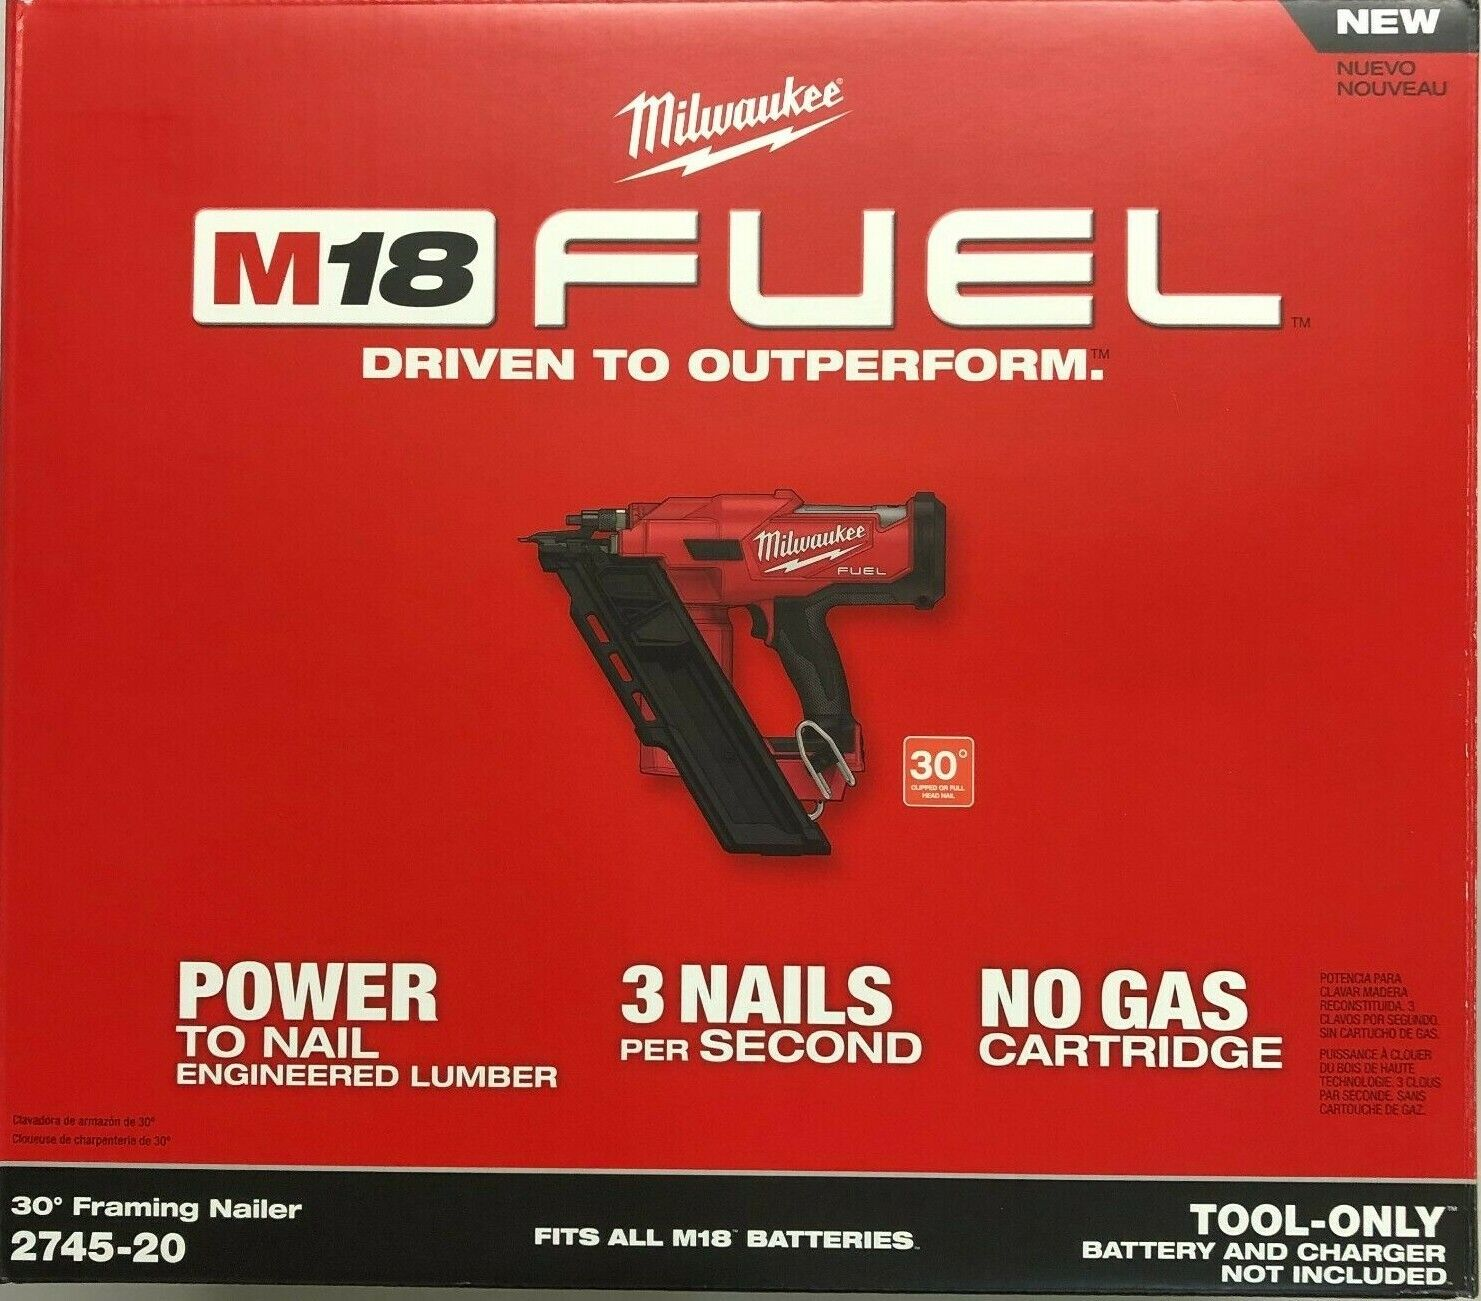 Milwaukee 2745-20 M18 Fuel 30 degree Strip Cordless Framing Nailer (bare) NEW. Buy it now for 369.00